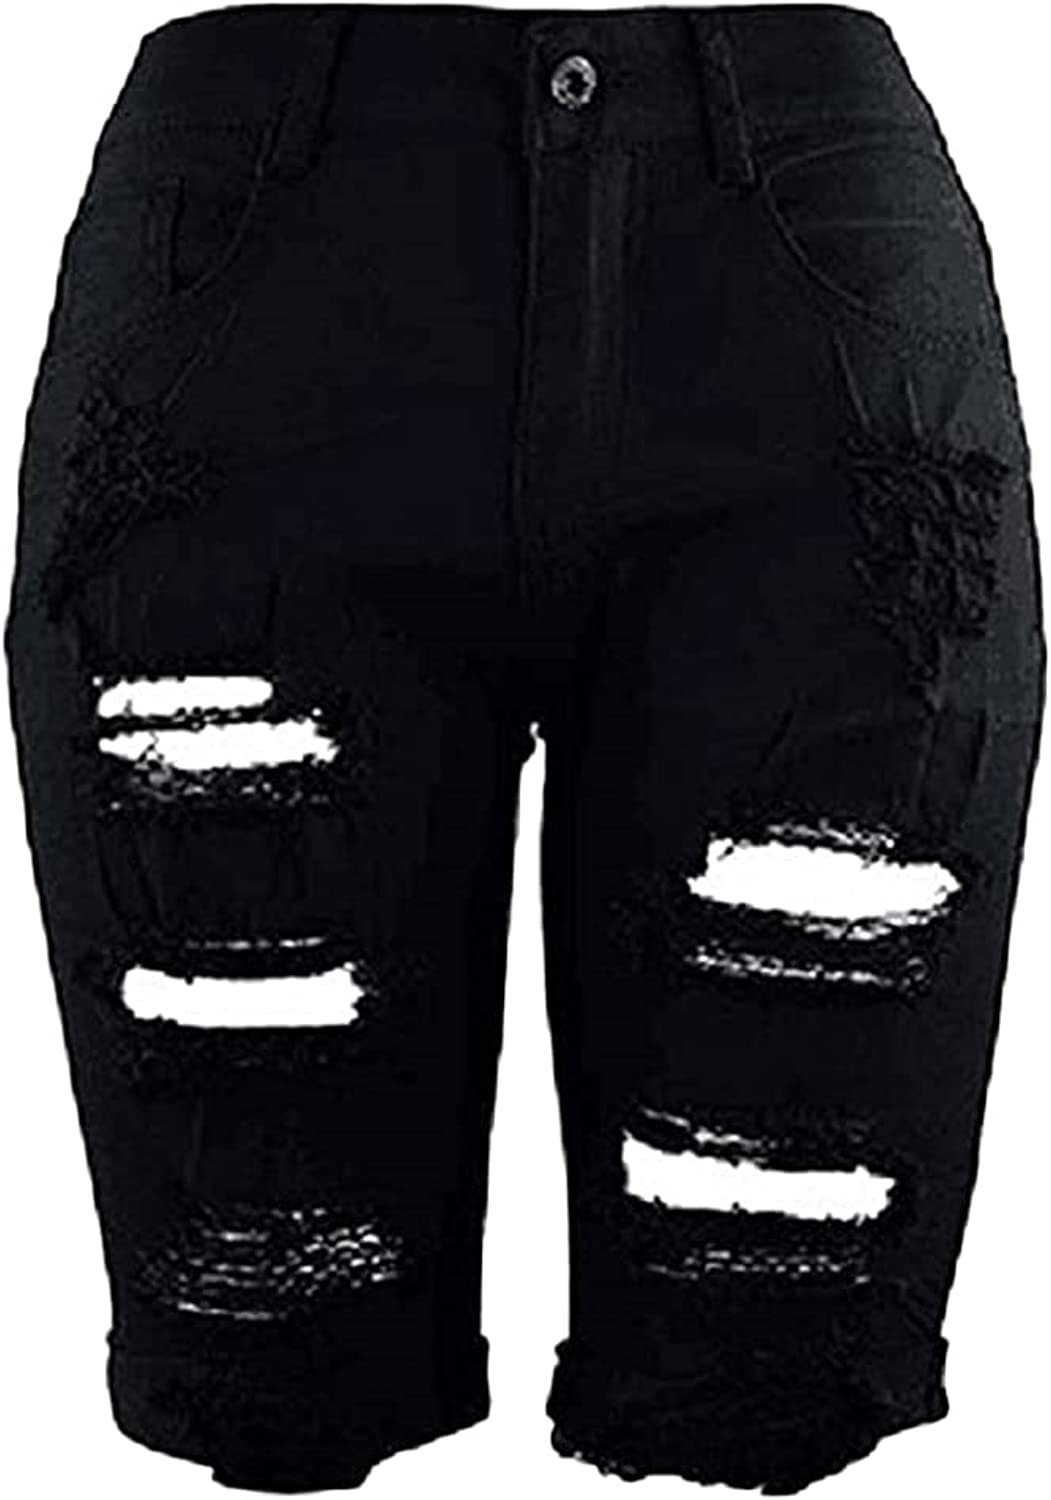 Ripped Bermuda Denim Shorts For Women Distressed Juniors Plus Size Jeans Shorts High Waisted Sexy Stretchy Short Jeans